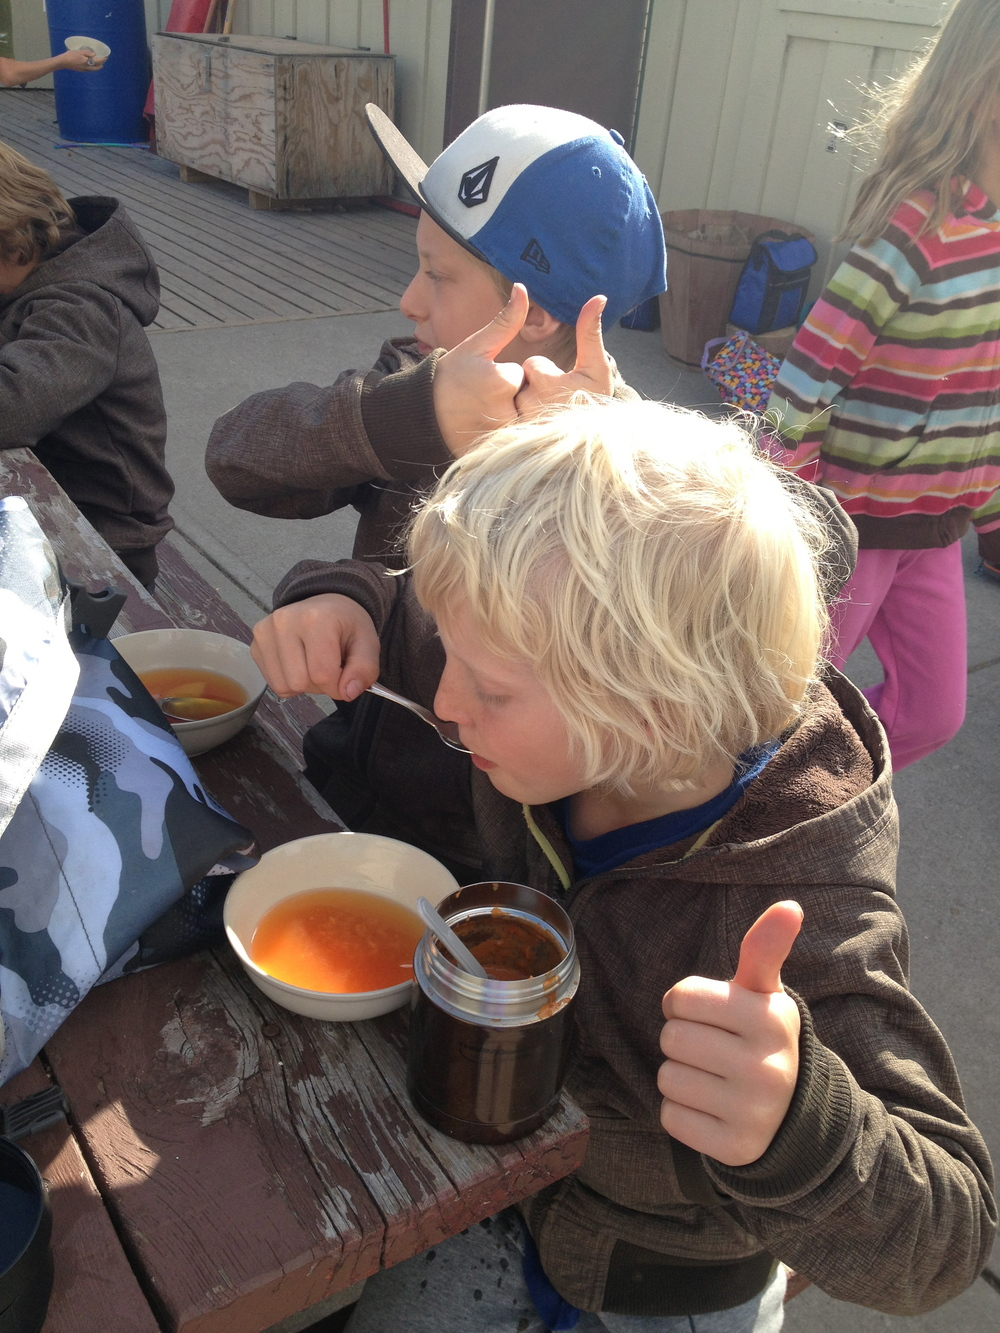 Pride. Teamwork. Confidence. Enjoyment. Through Chris from the Farm Box and Graeme the grade 3-4 teacher at Alpenglow School the class harvested the vegetables from the school's roof top garden and made soup. As you can see these boys don't have time for small talk and a photo - they are focussed on enjoying the thumbs-up soup they made with their class. These experiences promote wellness on so many levels: connection to the earth, whole good fresher than fresh food, connection with each other. Especially at this development stage in their life this is such a beautiful curriculum gift to offer the students as the step more into themselves as individuals in community.